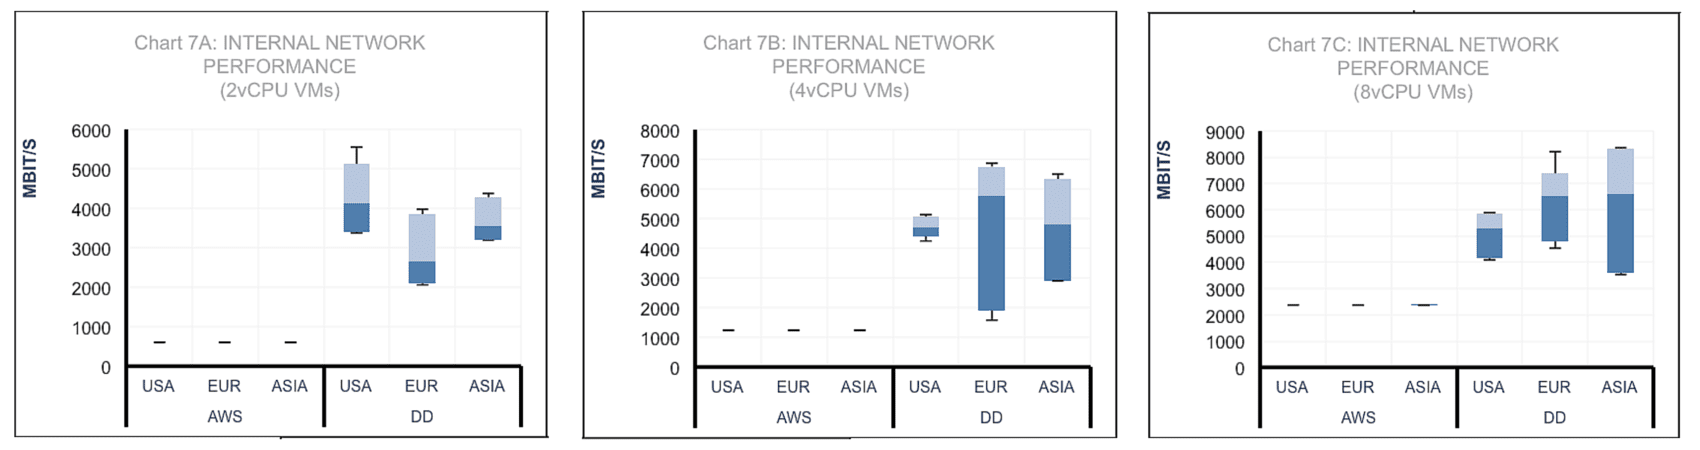 Internal Network Performance comparison graphs, for 2, 4 and 8vCPU VMs